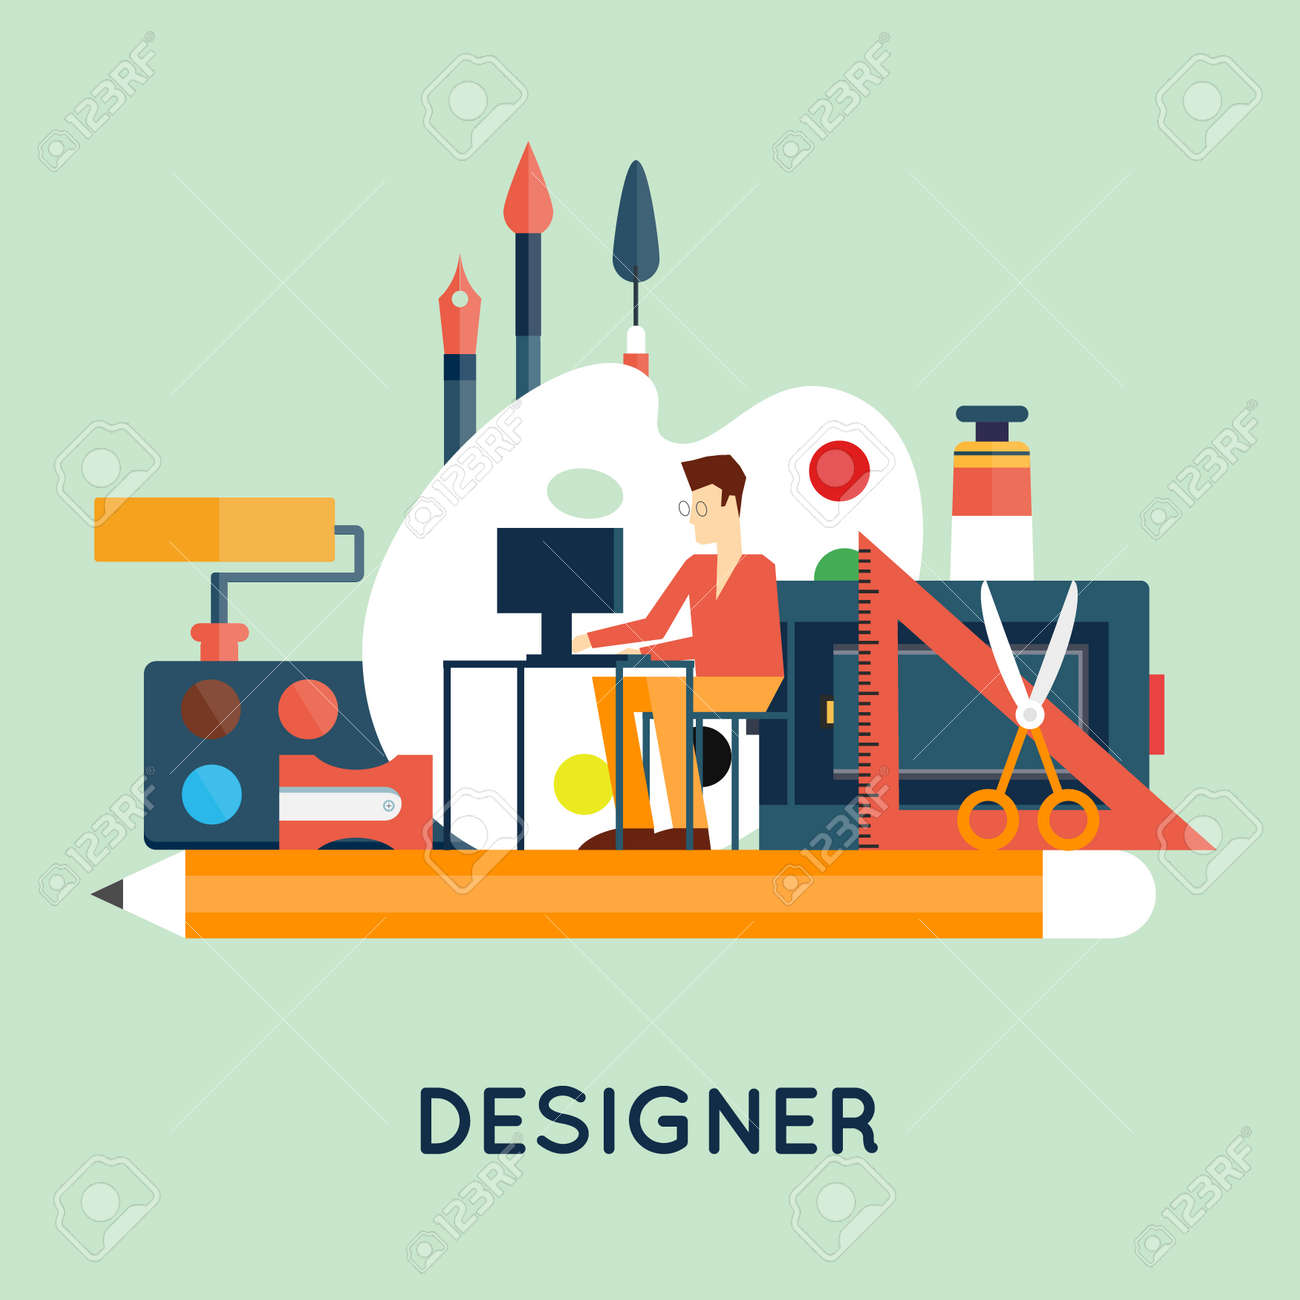 Designer character and workspace with tools and devices in modern flat style. Creative process, logo and graphic design, design agency. Flat design vector illustration. - 48036195